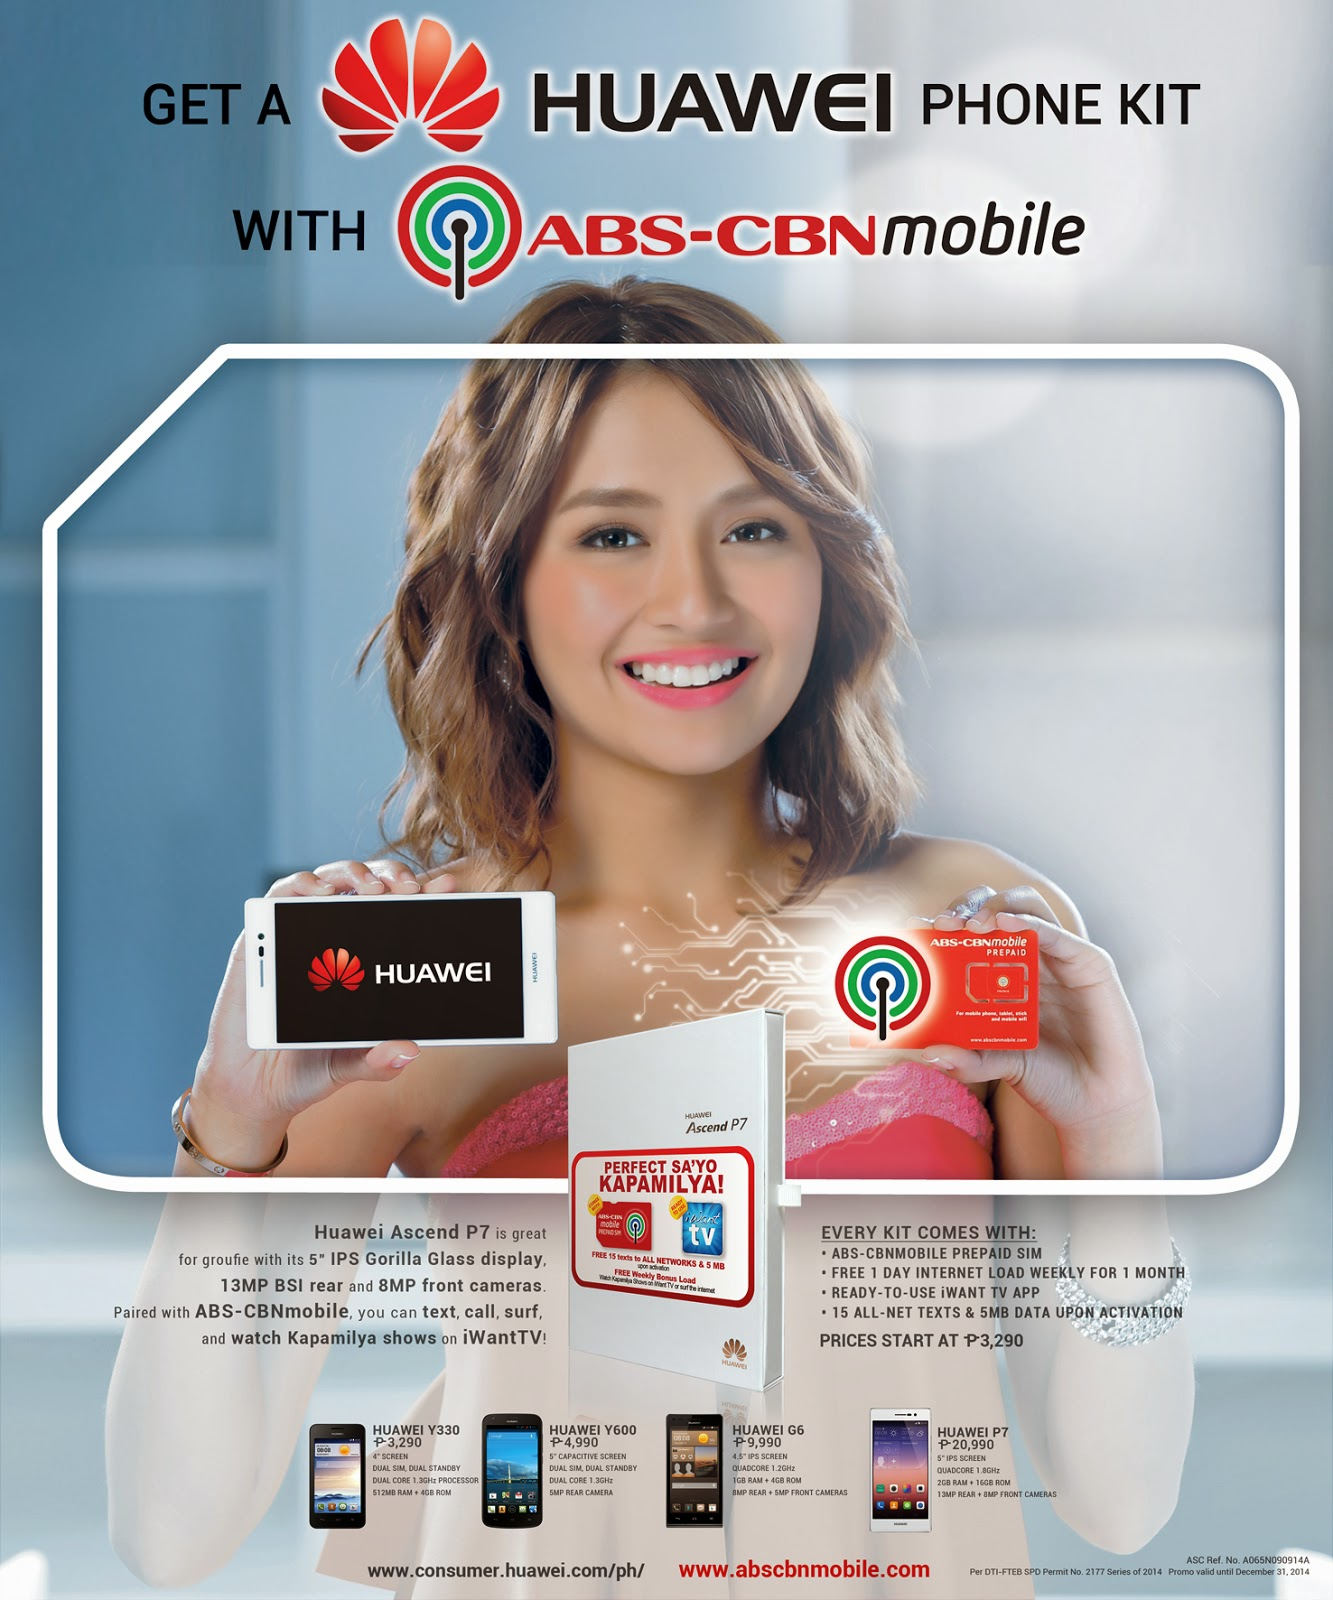 Kathryn Bernardo for ABS-CBNmobile